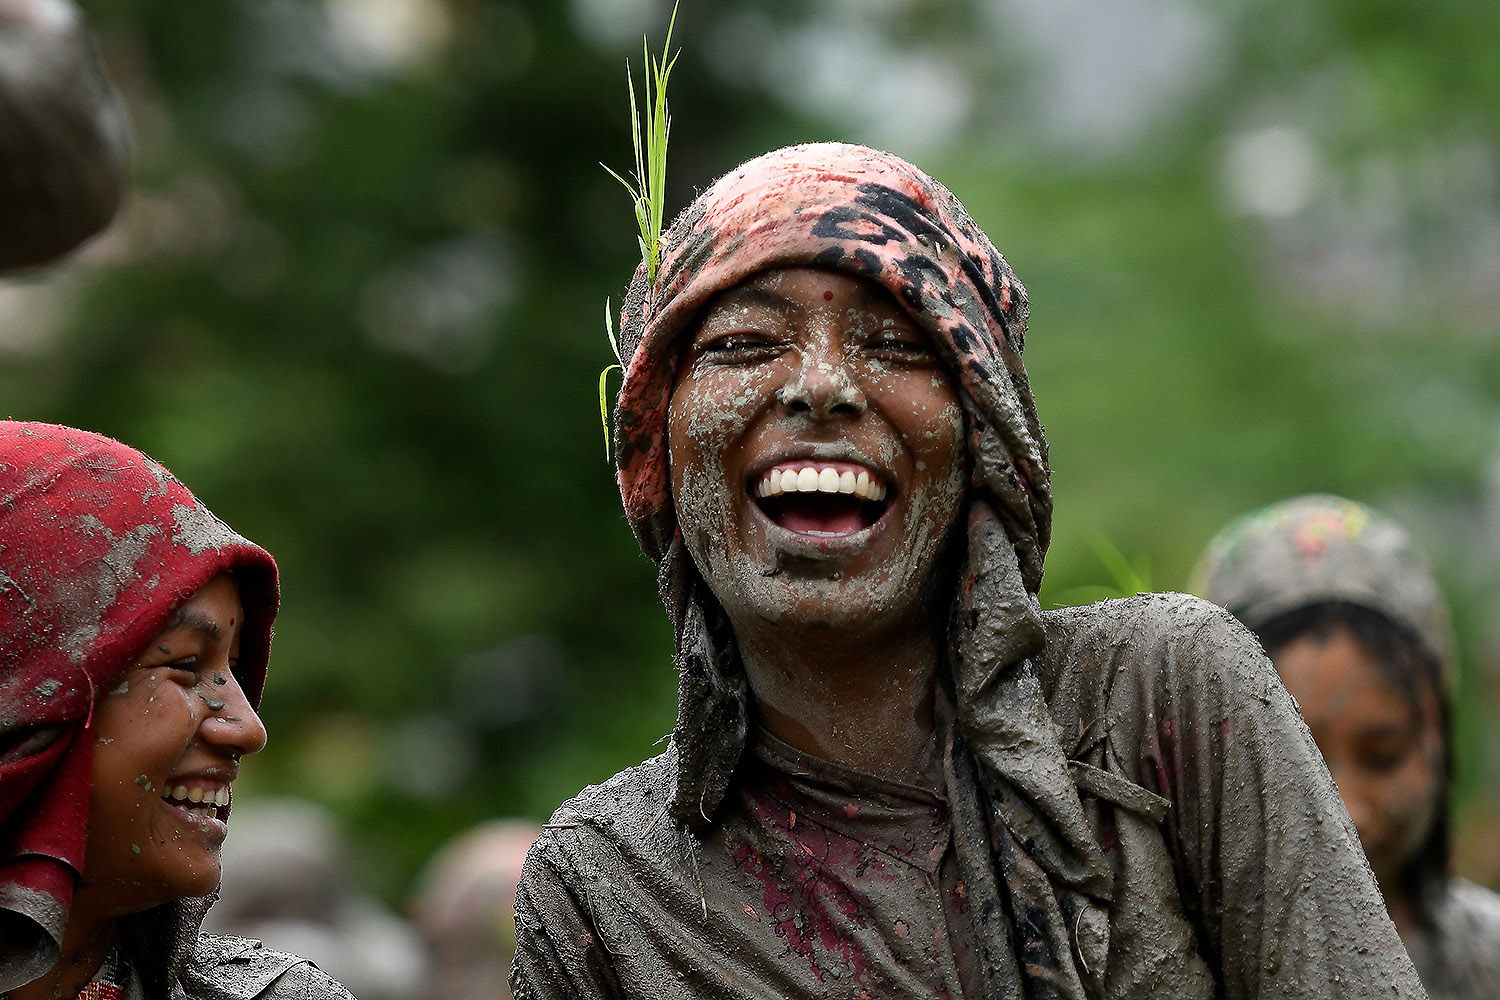 This contagious smile. Splashing in mud and drinking local rice beer, Nepali farmers celebrate National Paddy Day to mark the beginning of the rice-planting season in Tokha village on the outskirts of Kathmandu, Nepal, on June 29. PRAKASH MATHEMA/AFP via Getty Images